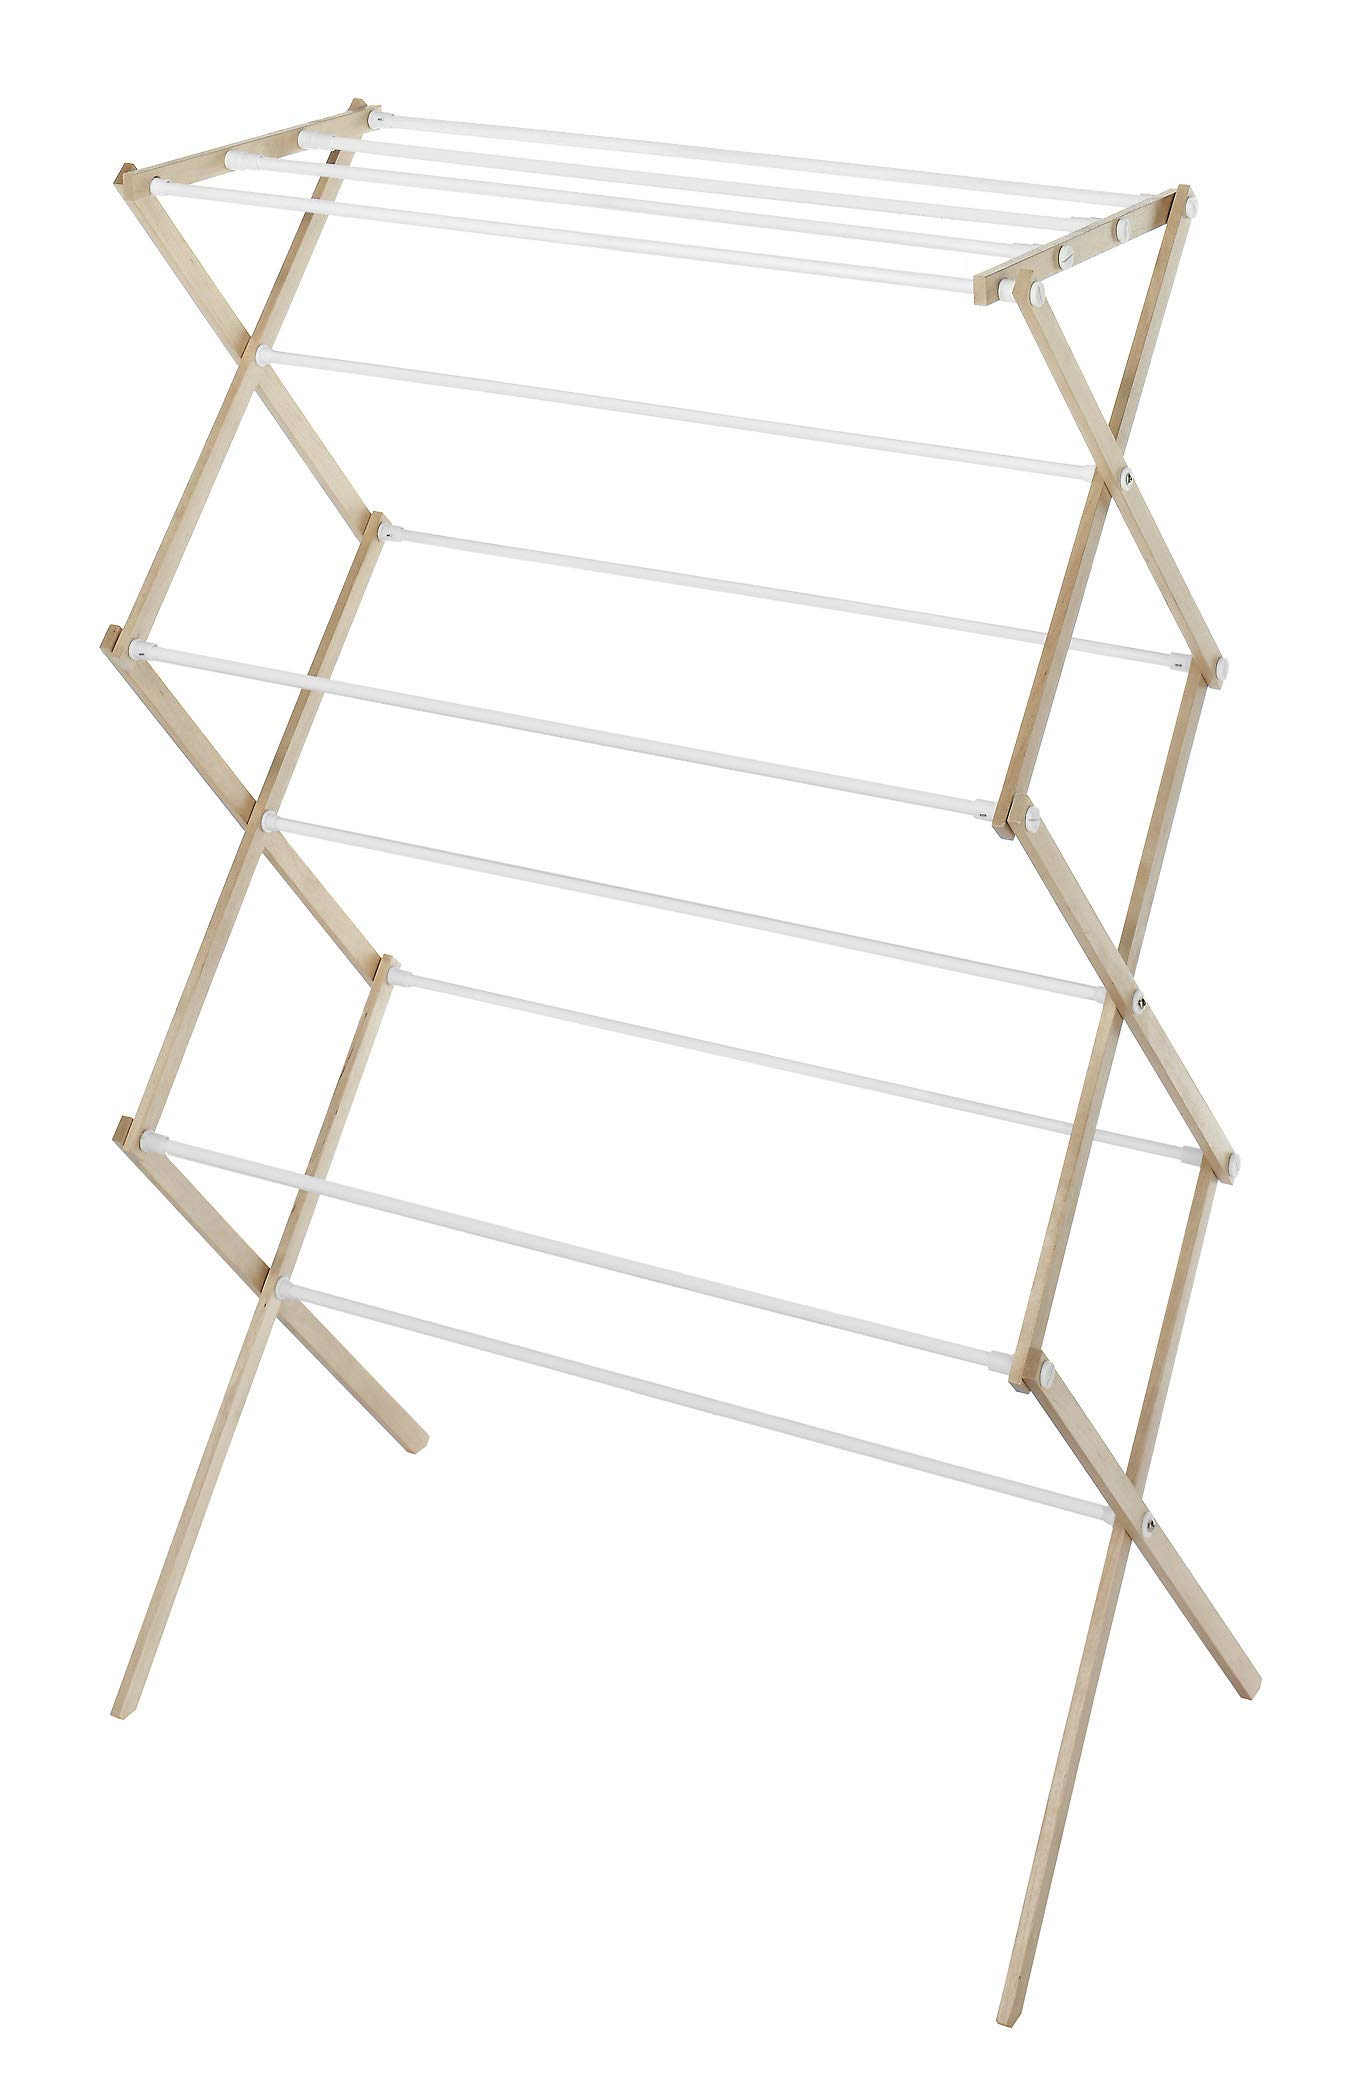 Whitmor Foldable Drying Racks - Wood - Foldable wood drying rack designed for lightweight use Created with 11 bars to offer generous amount of clothes drying space Collapsible design folds down in an accordion style allowing storage in compact spaces - laundry-room, entryway-laundry-room, drying-racks - 61%2BV%2BDsYh9L -